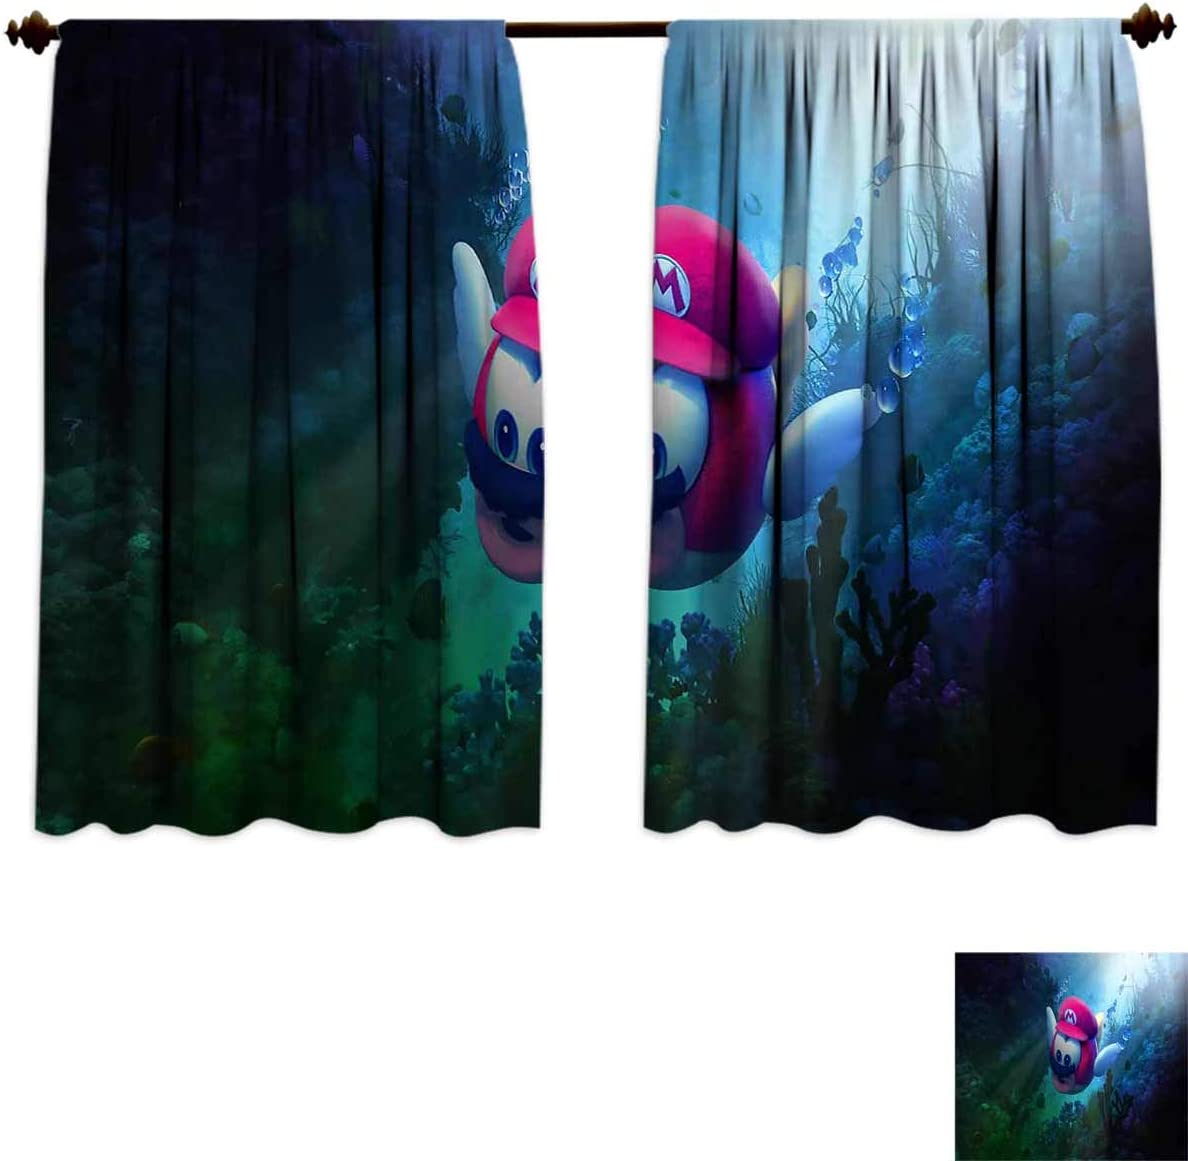 Darlene Harts Black Eclipse Nursery Curtains 84 Inches Long Super Mario 3D Background Light Blocking Curtains for Nursery 72×84 Inch